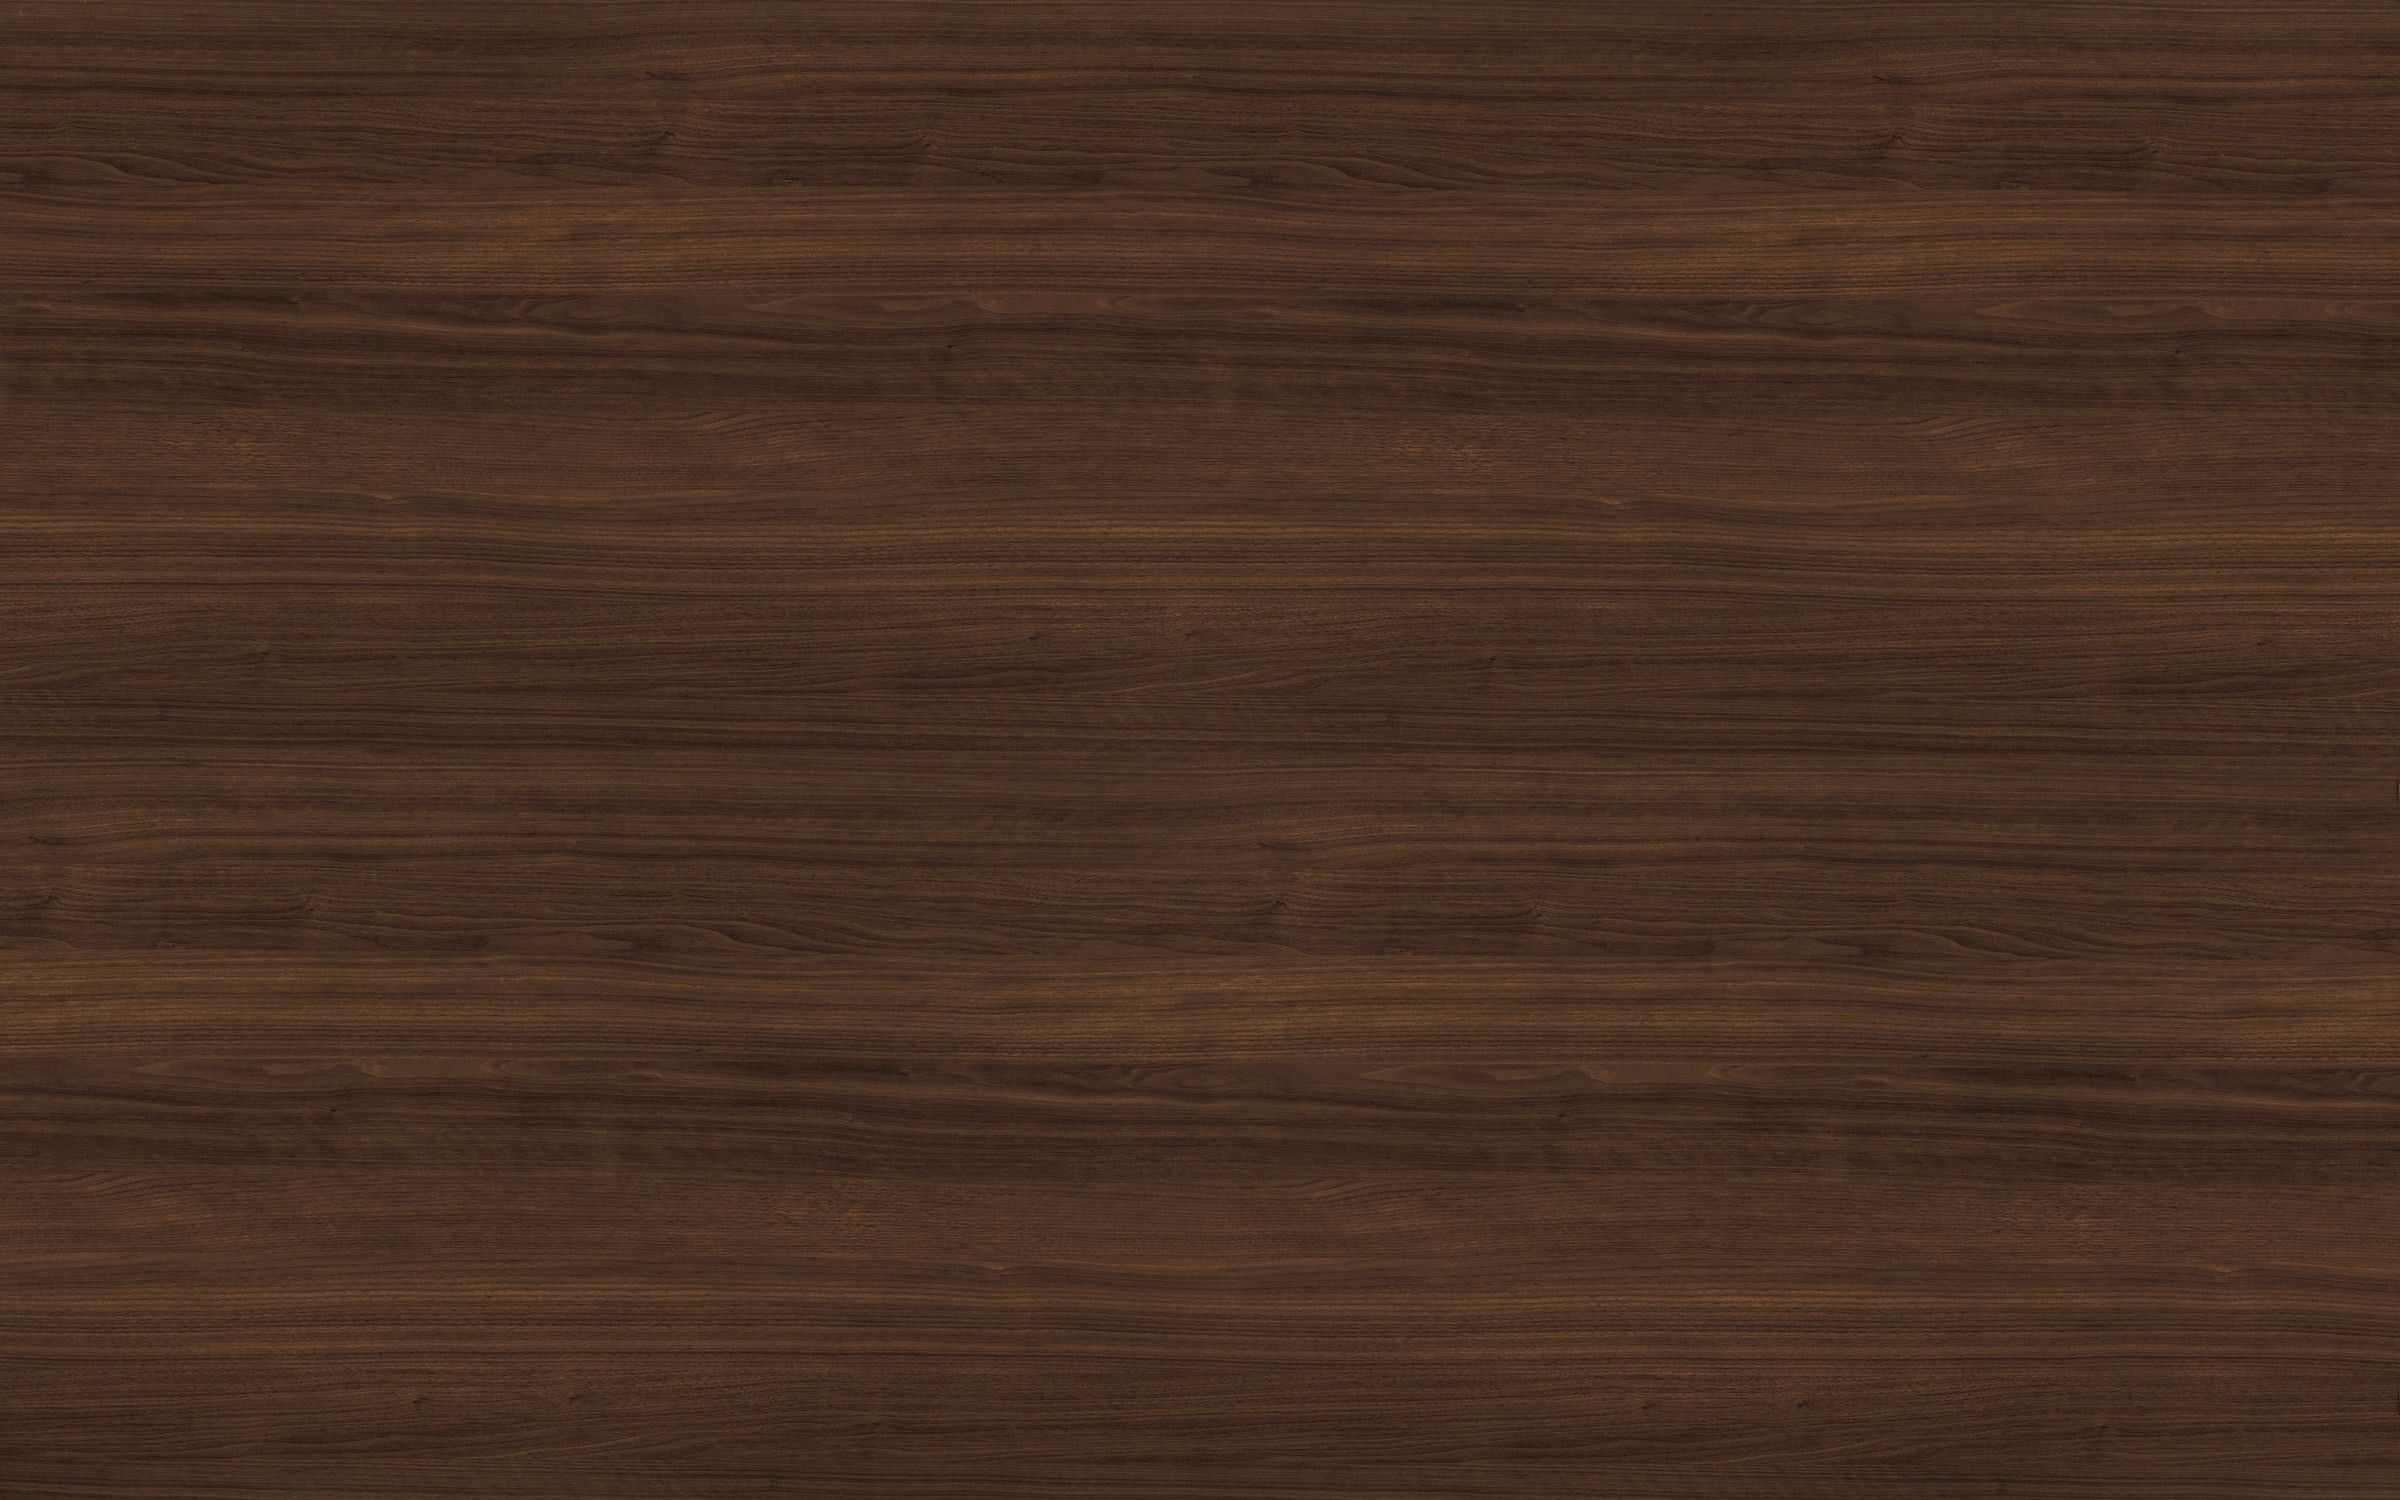 Laminate Wilsonart Columbian Walnut 7943